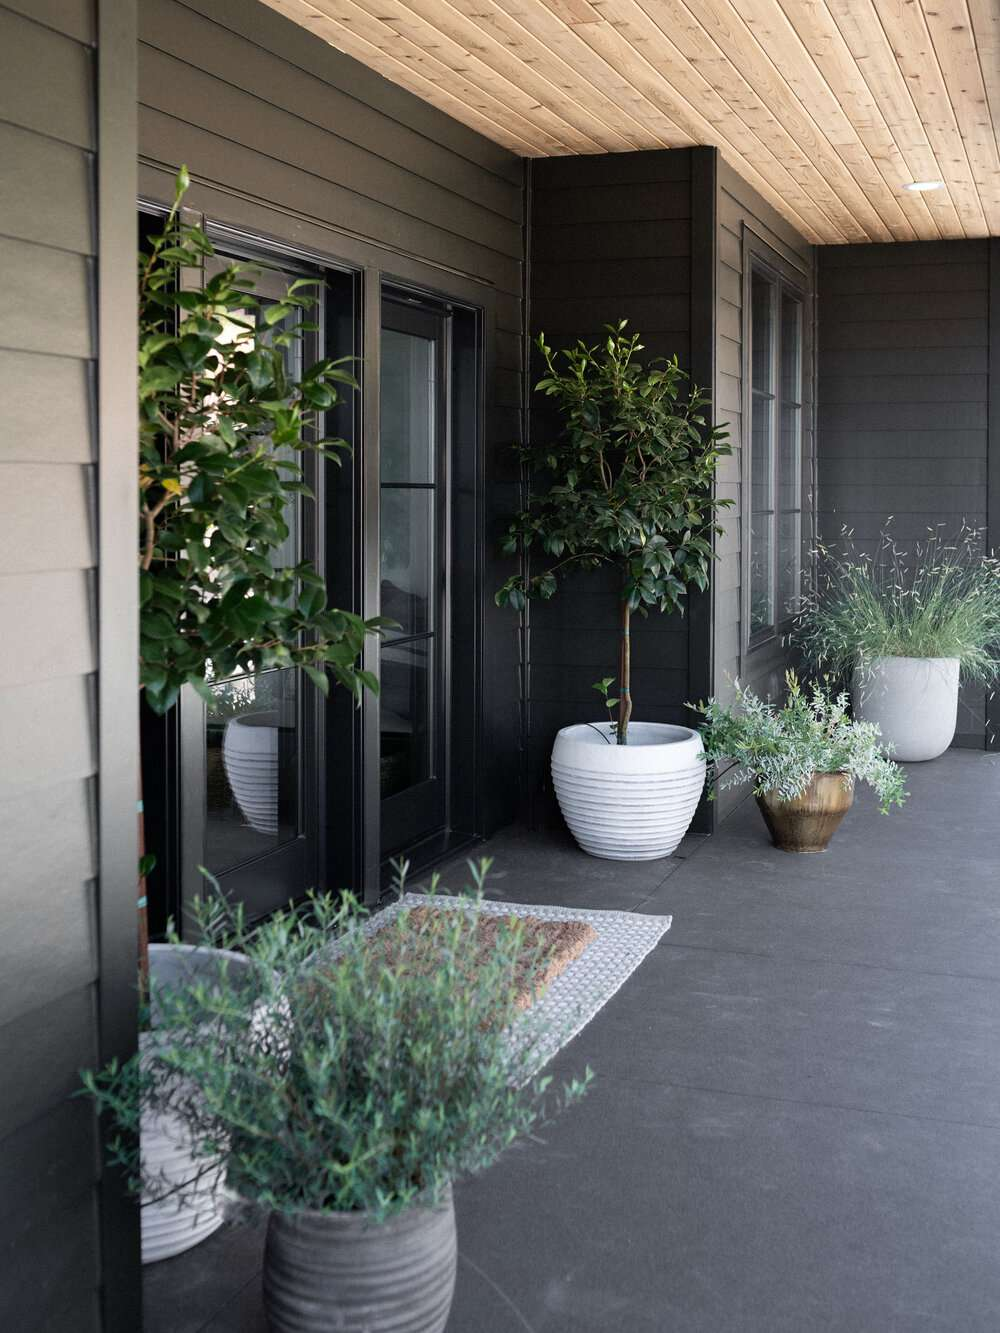 Front porch of home with large potted plants.